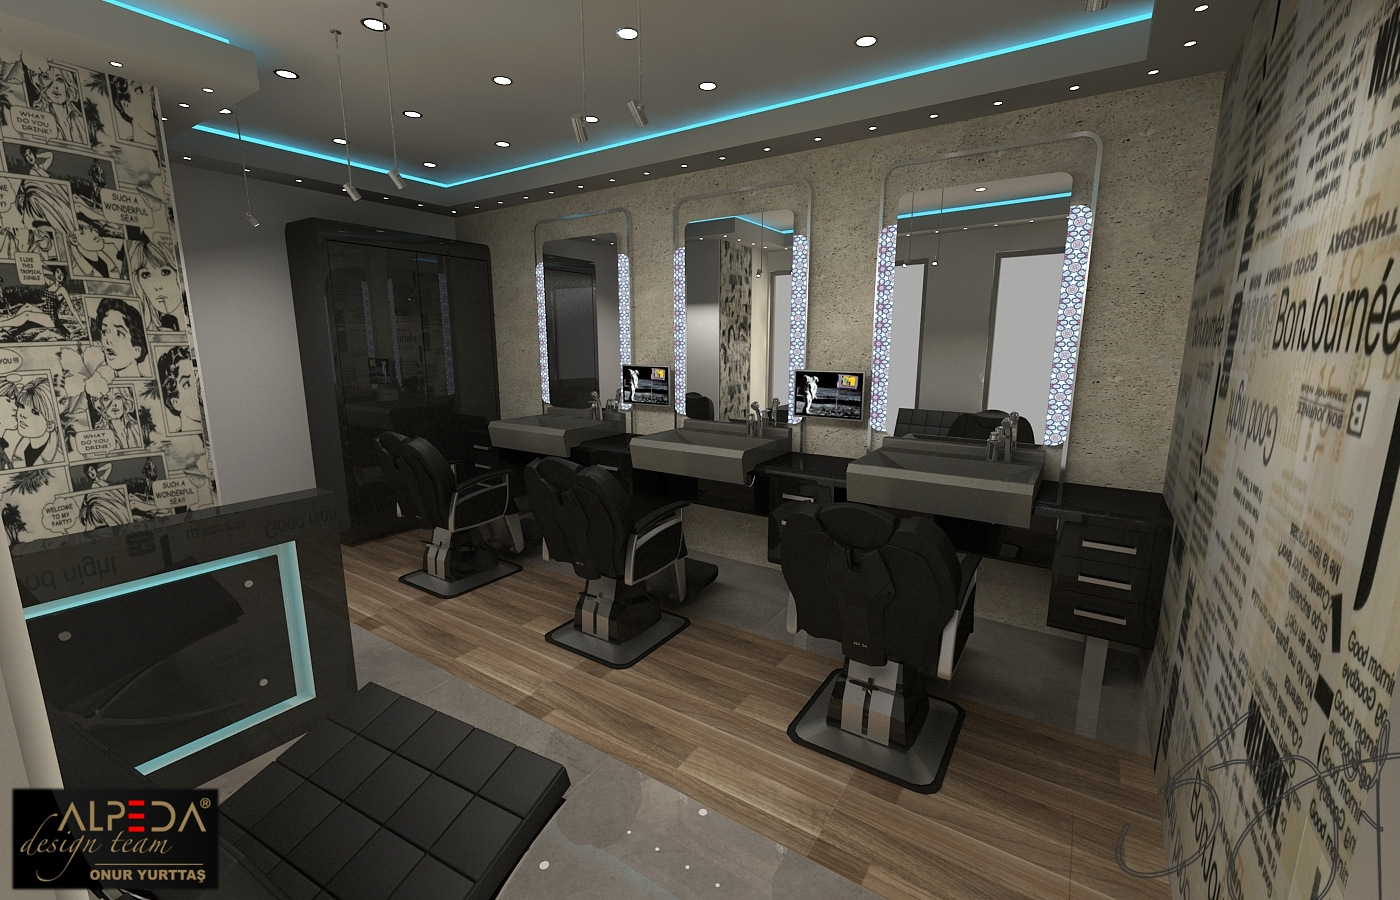 Salon Architecture Coiffure Salon Design By Onur Yurttas At Coroflot